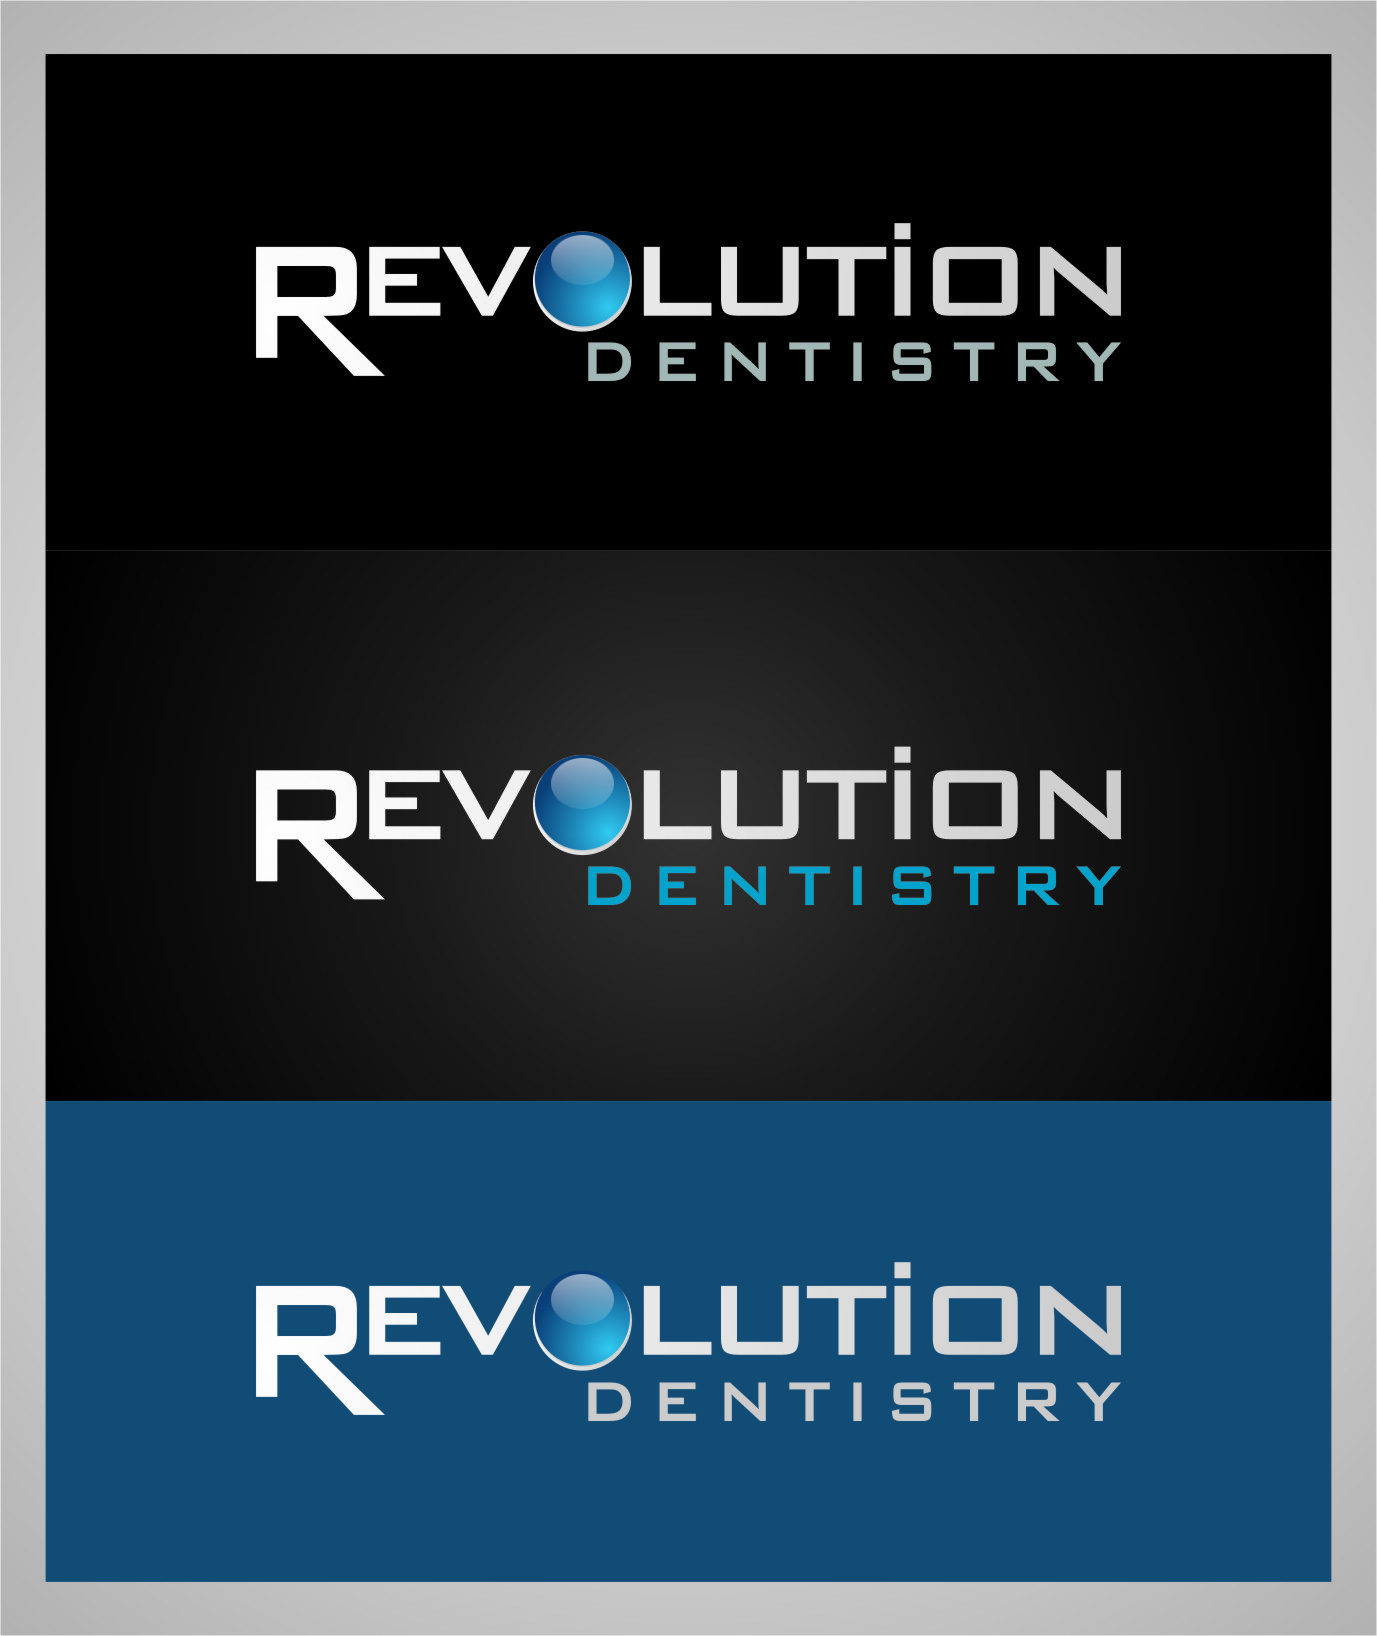 Logo Design by Ngepet_art - Entry No. 268 in the Logo Design Contest Artistic Logo Design for Revolution Dentistry.